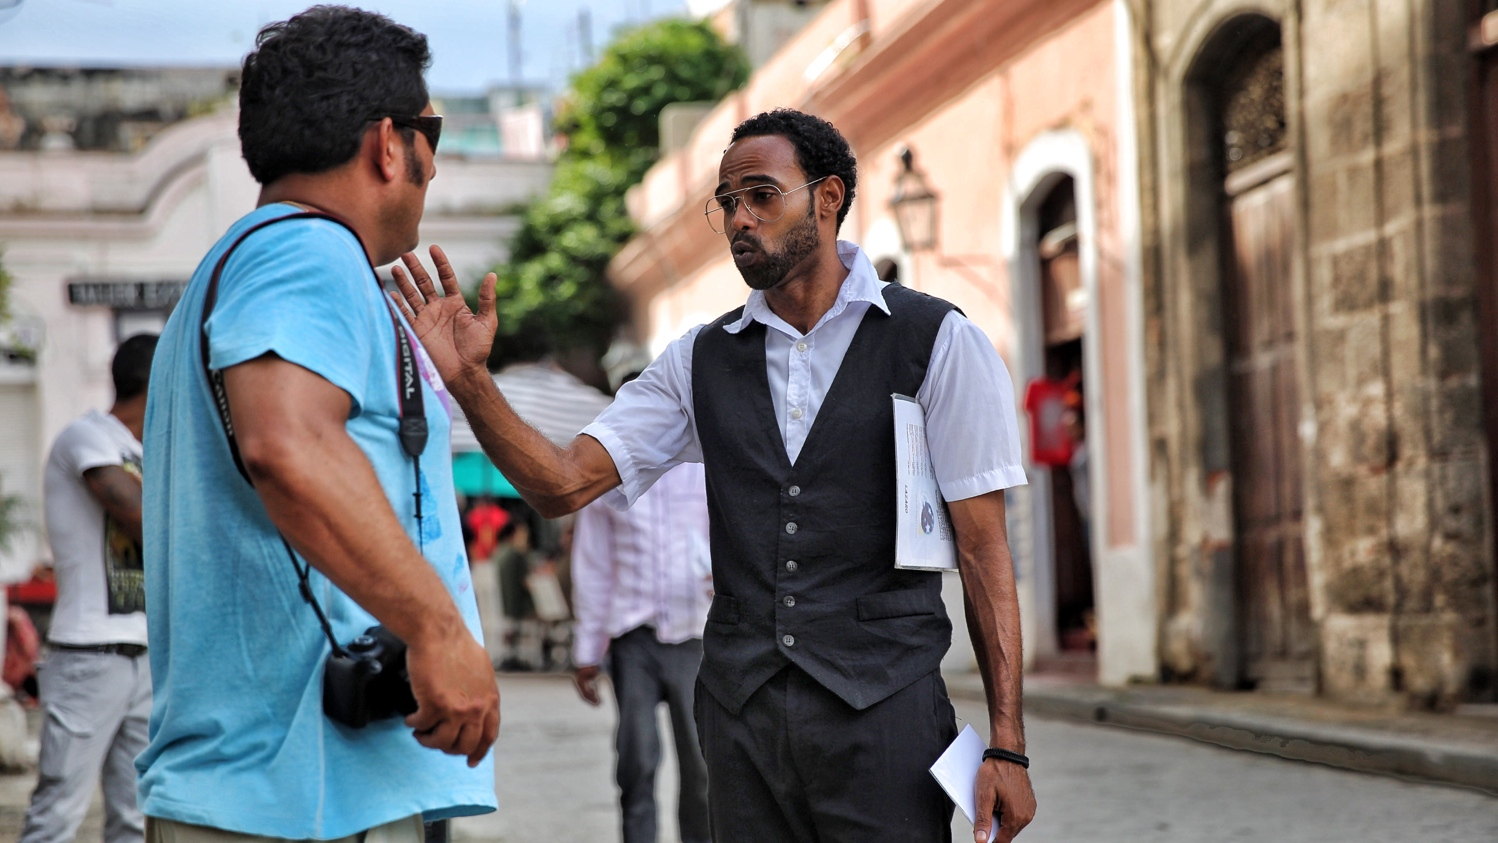 Waiters hunting clients in Havana